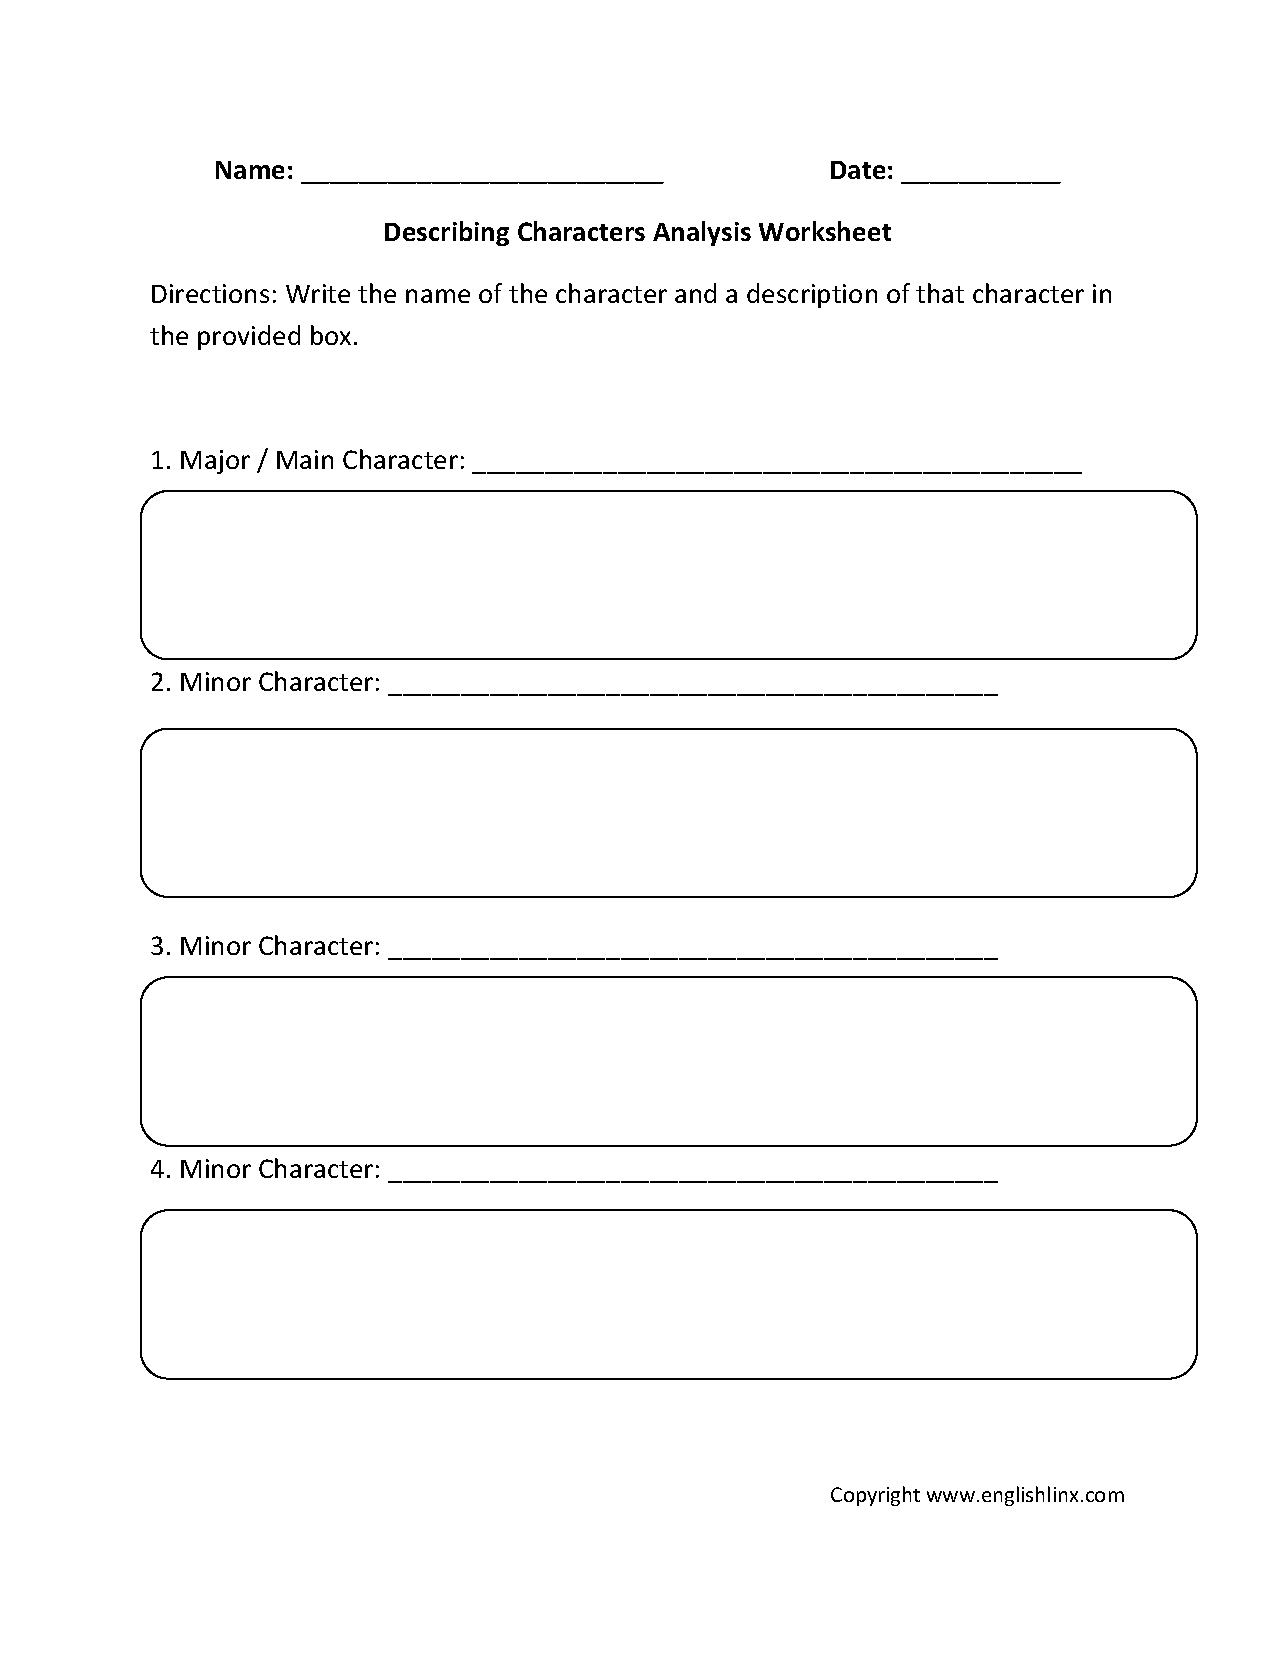 Worksheets Character Study Worksheet englishlinx com character analysis worksheets worksheets